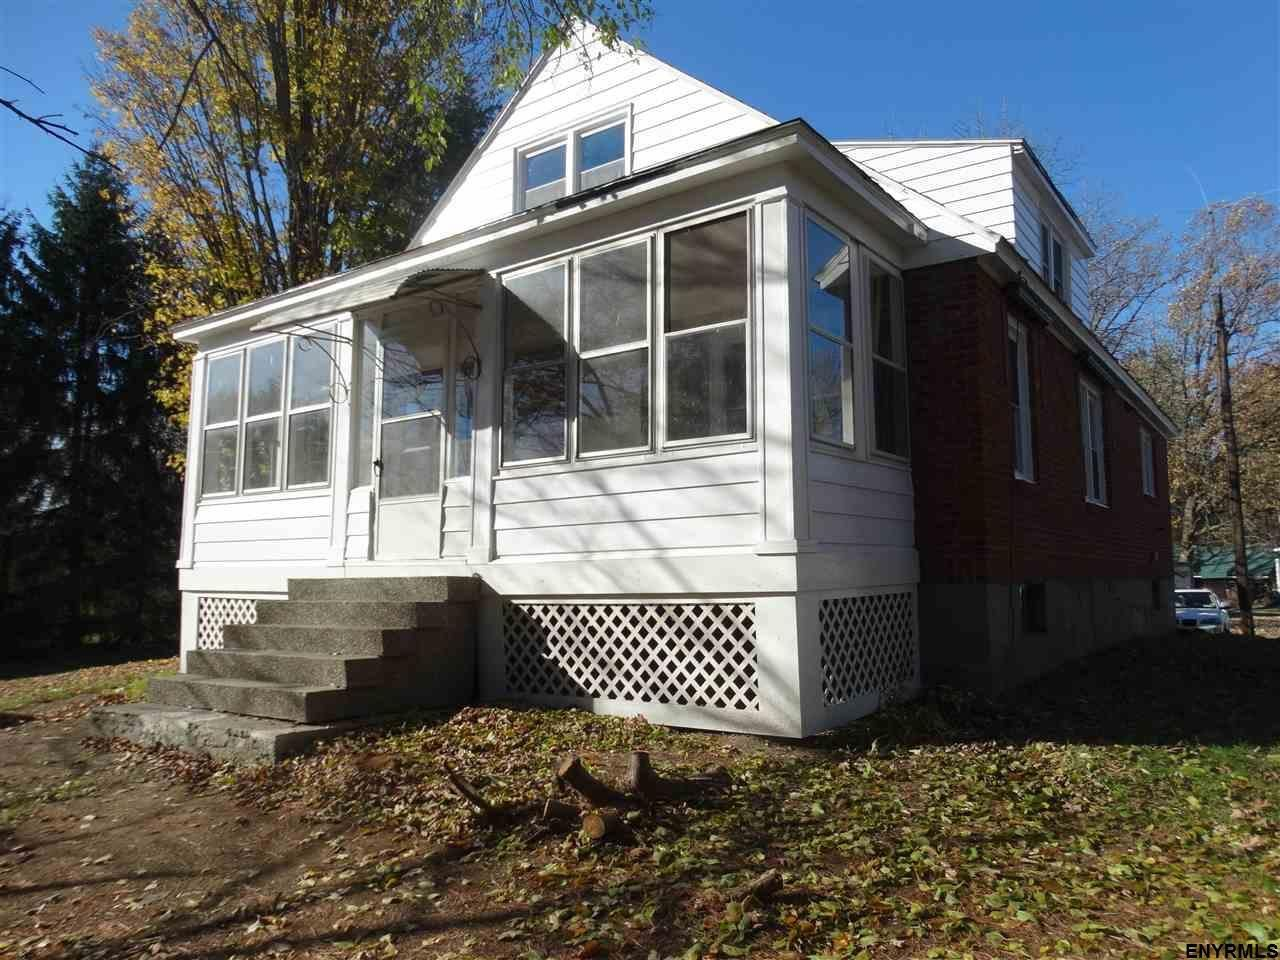 Enjoy 2 homes on one parcel fully rehabbed and ready to move in 61 beaver dam offers 2 bedrooms up 2 bedrooms down 2 baths hardwood floors